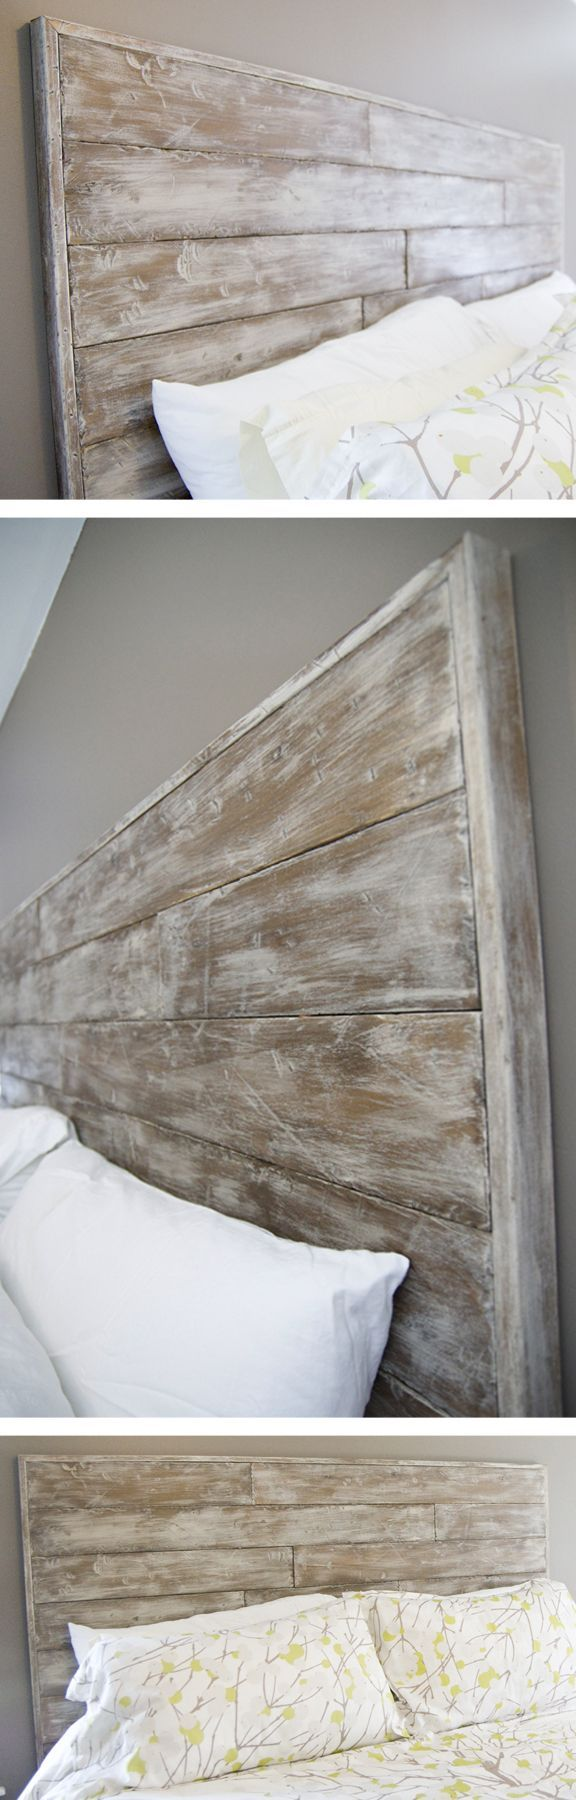 We made our own DIY faux-reclaimed wood headboard by texturizing, staining, painting, sanding, and varnishing Poplar wood.